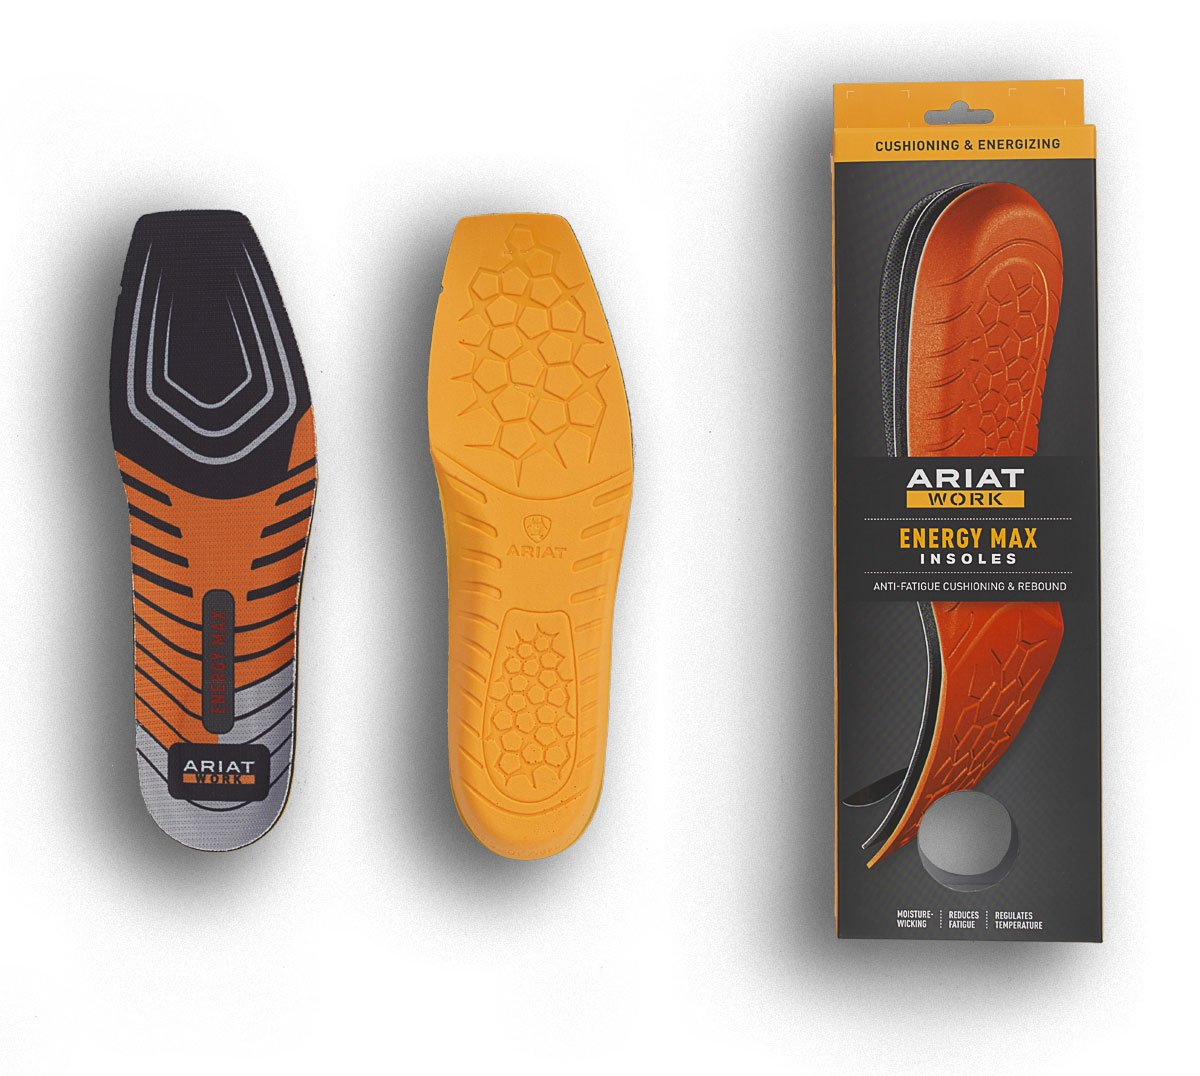 Energy Max Insole from Ariat